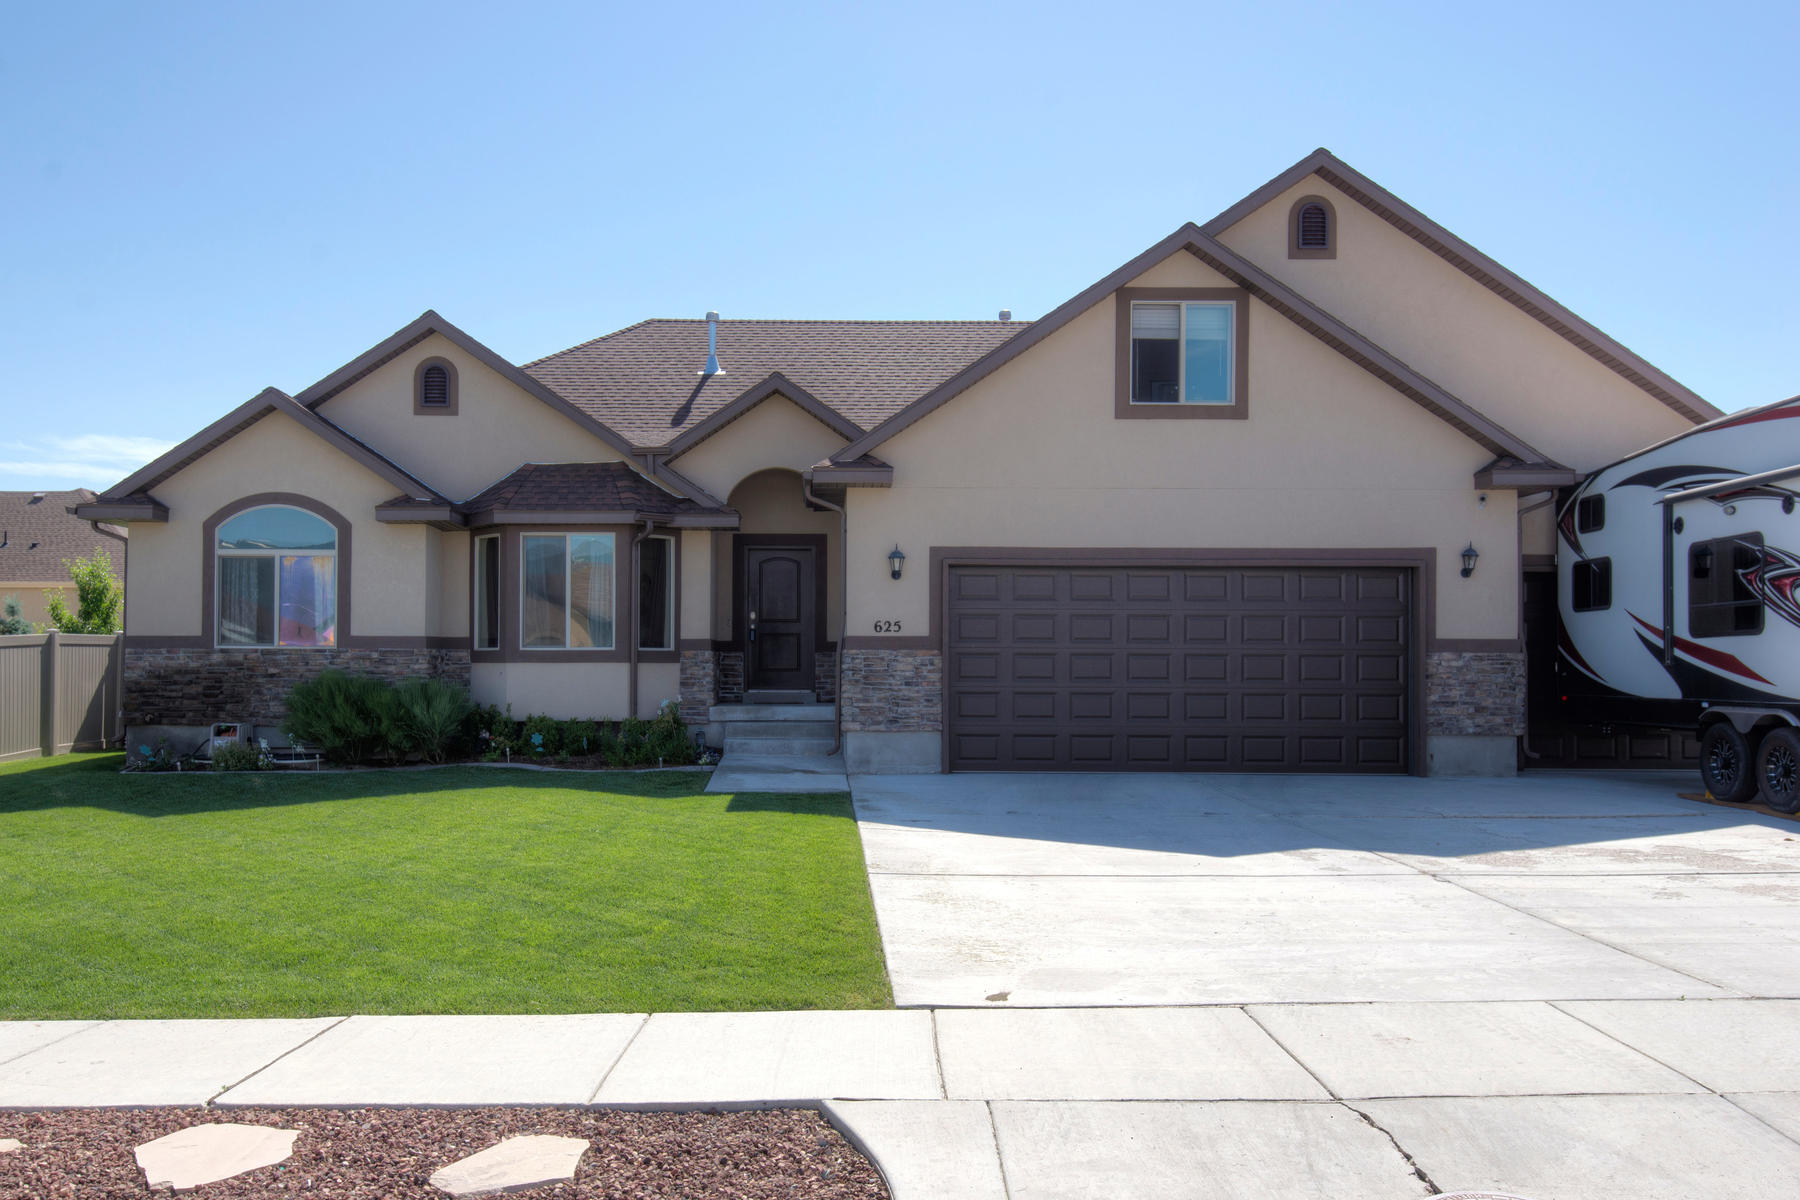 Single Family Home for Sale at This Aspen Pointe home is A MUST SEE! 625 South 820 East Heber City, Utah, 84032 United States